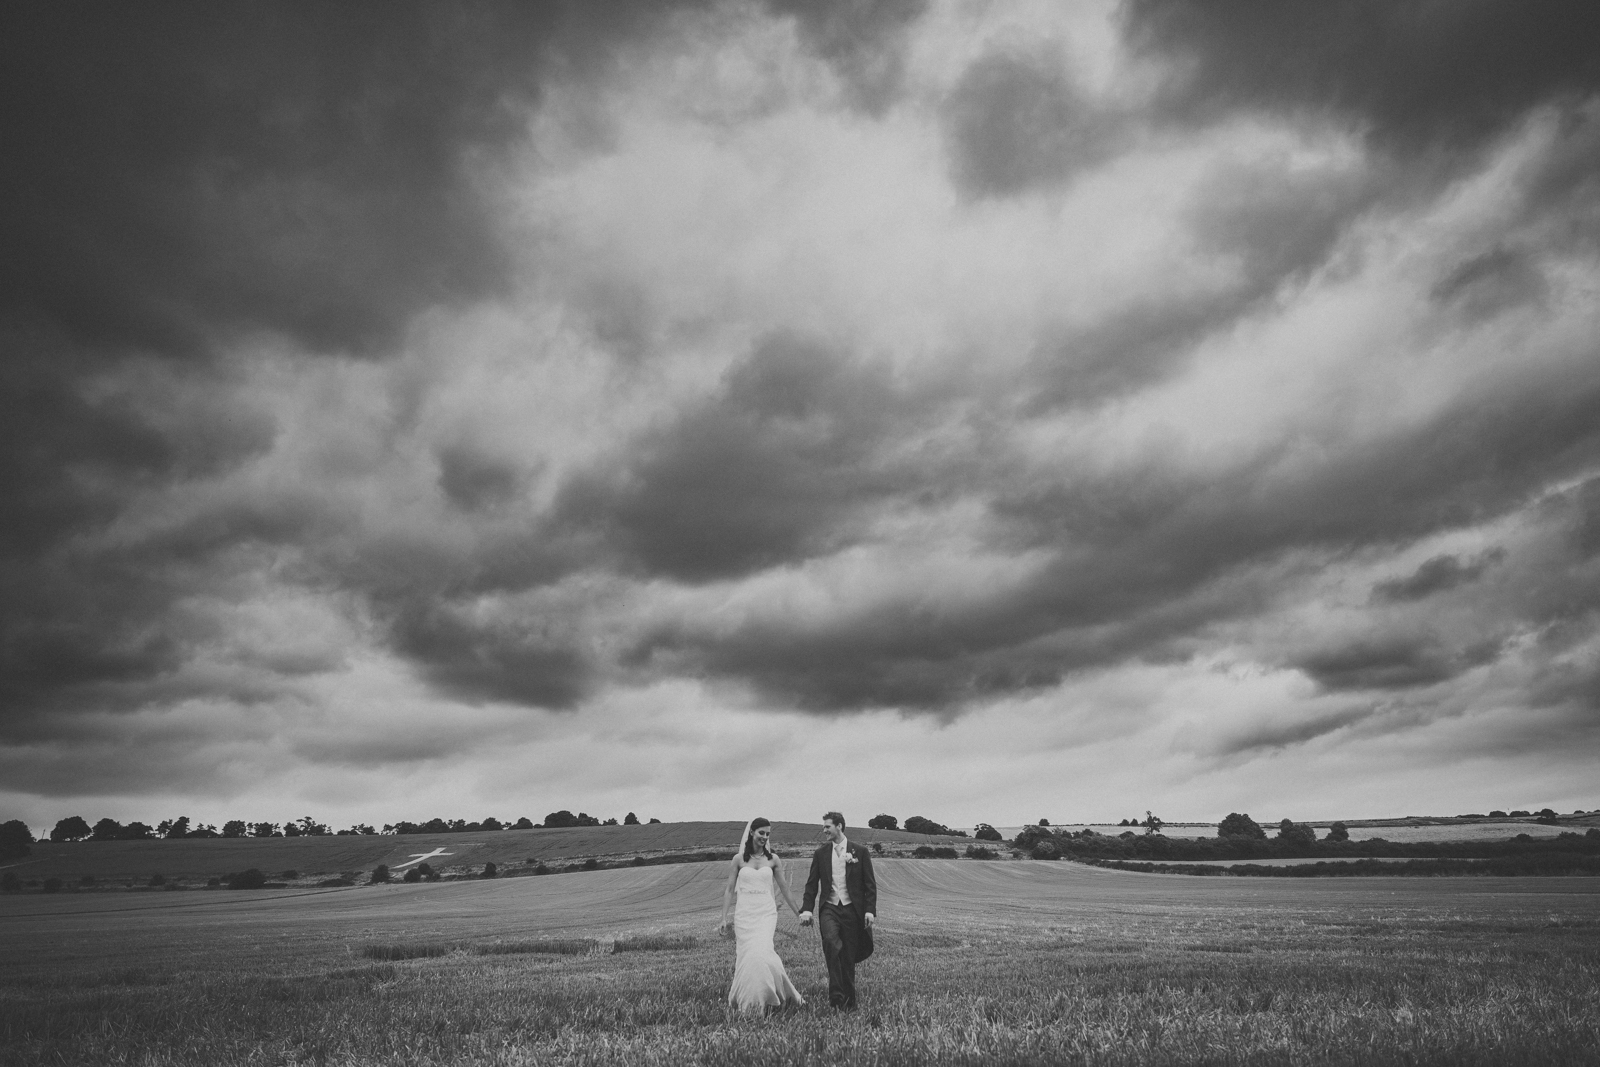 Chris Bradshaw Wedding Photography - Simon & Amanda Wedding Photos-68